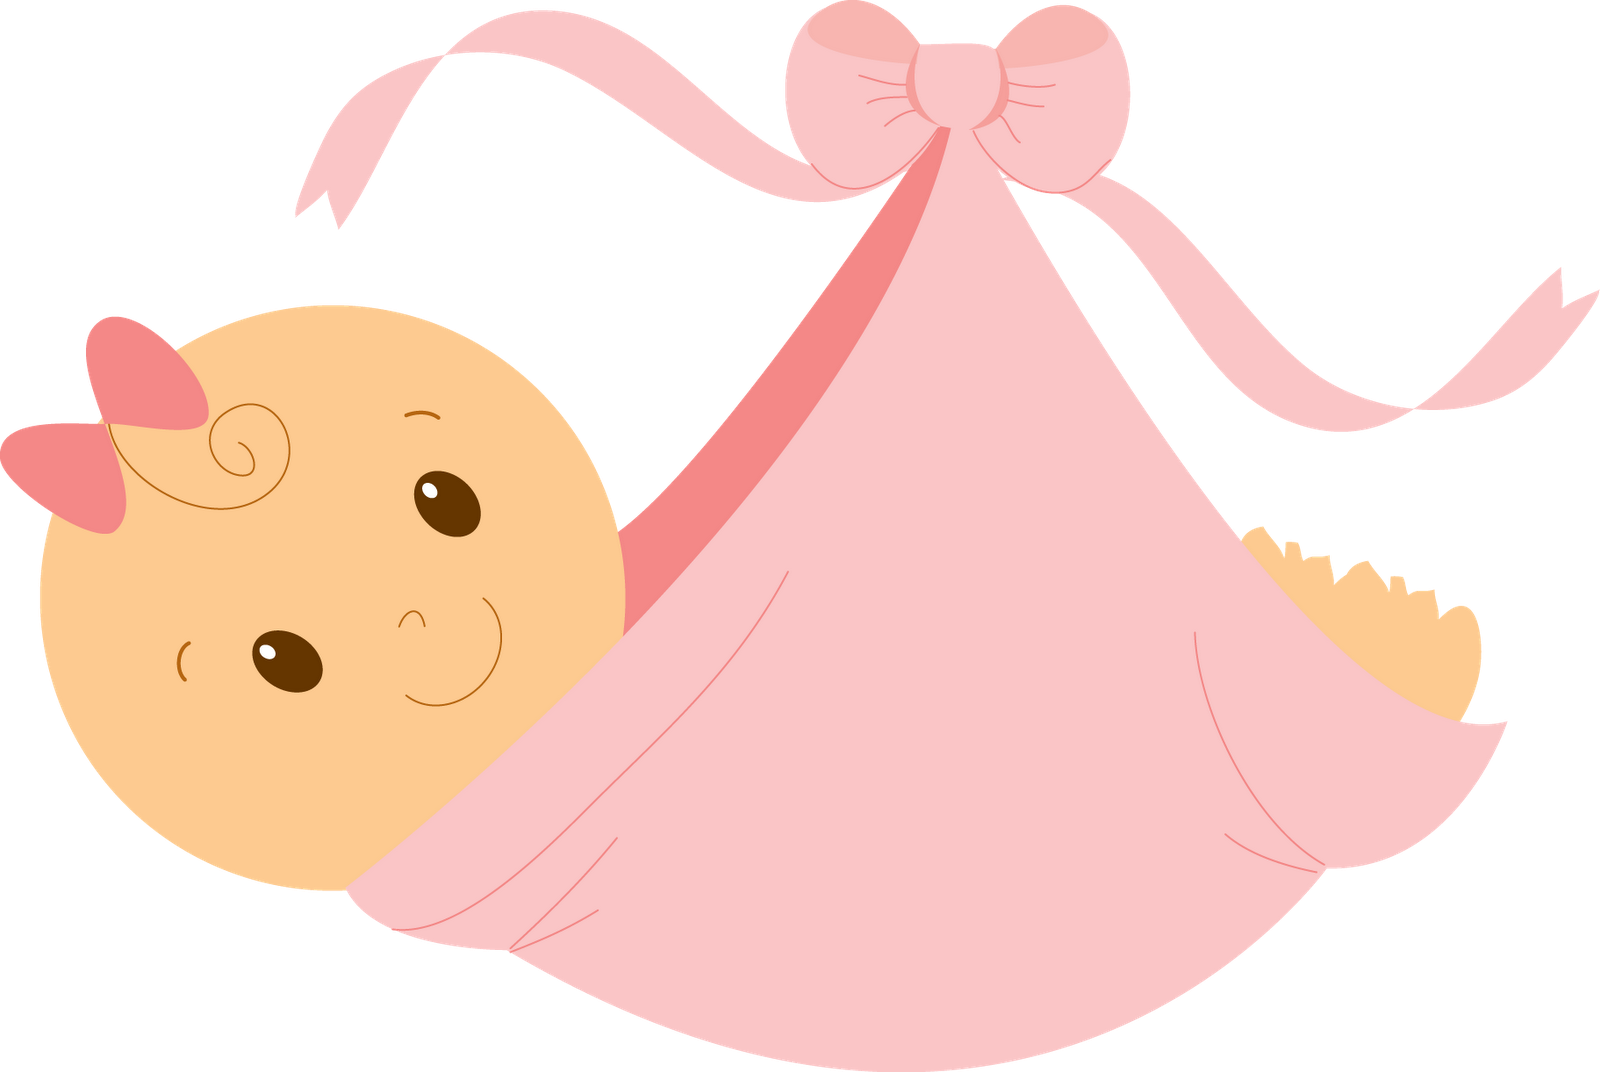 Baby girl pink clipart picture transparent stock Baby Girl Clip Art   Abra a imagem em outra aba p salvar em seu ... picture transparent stock